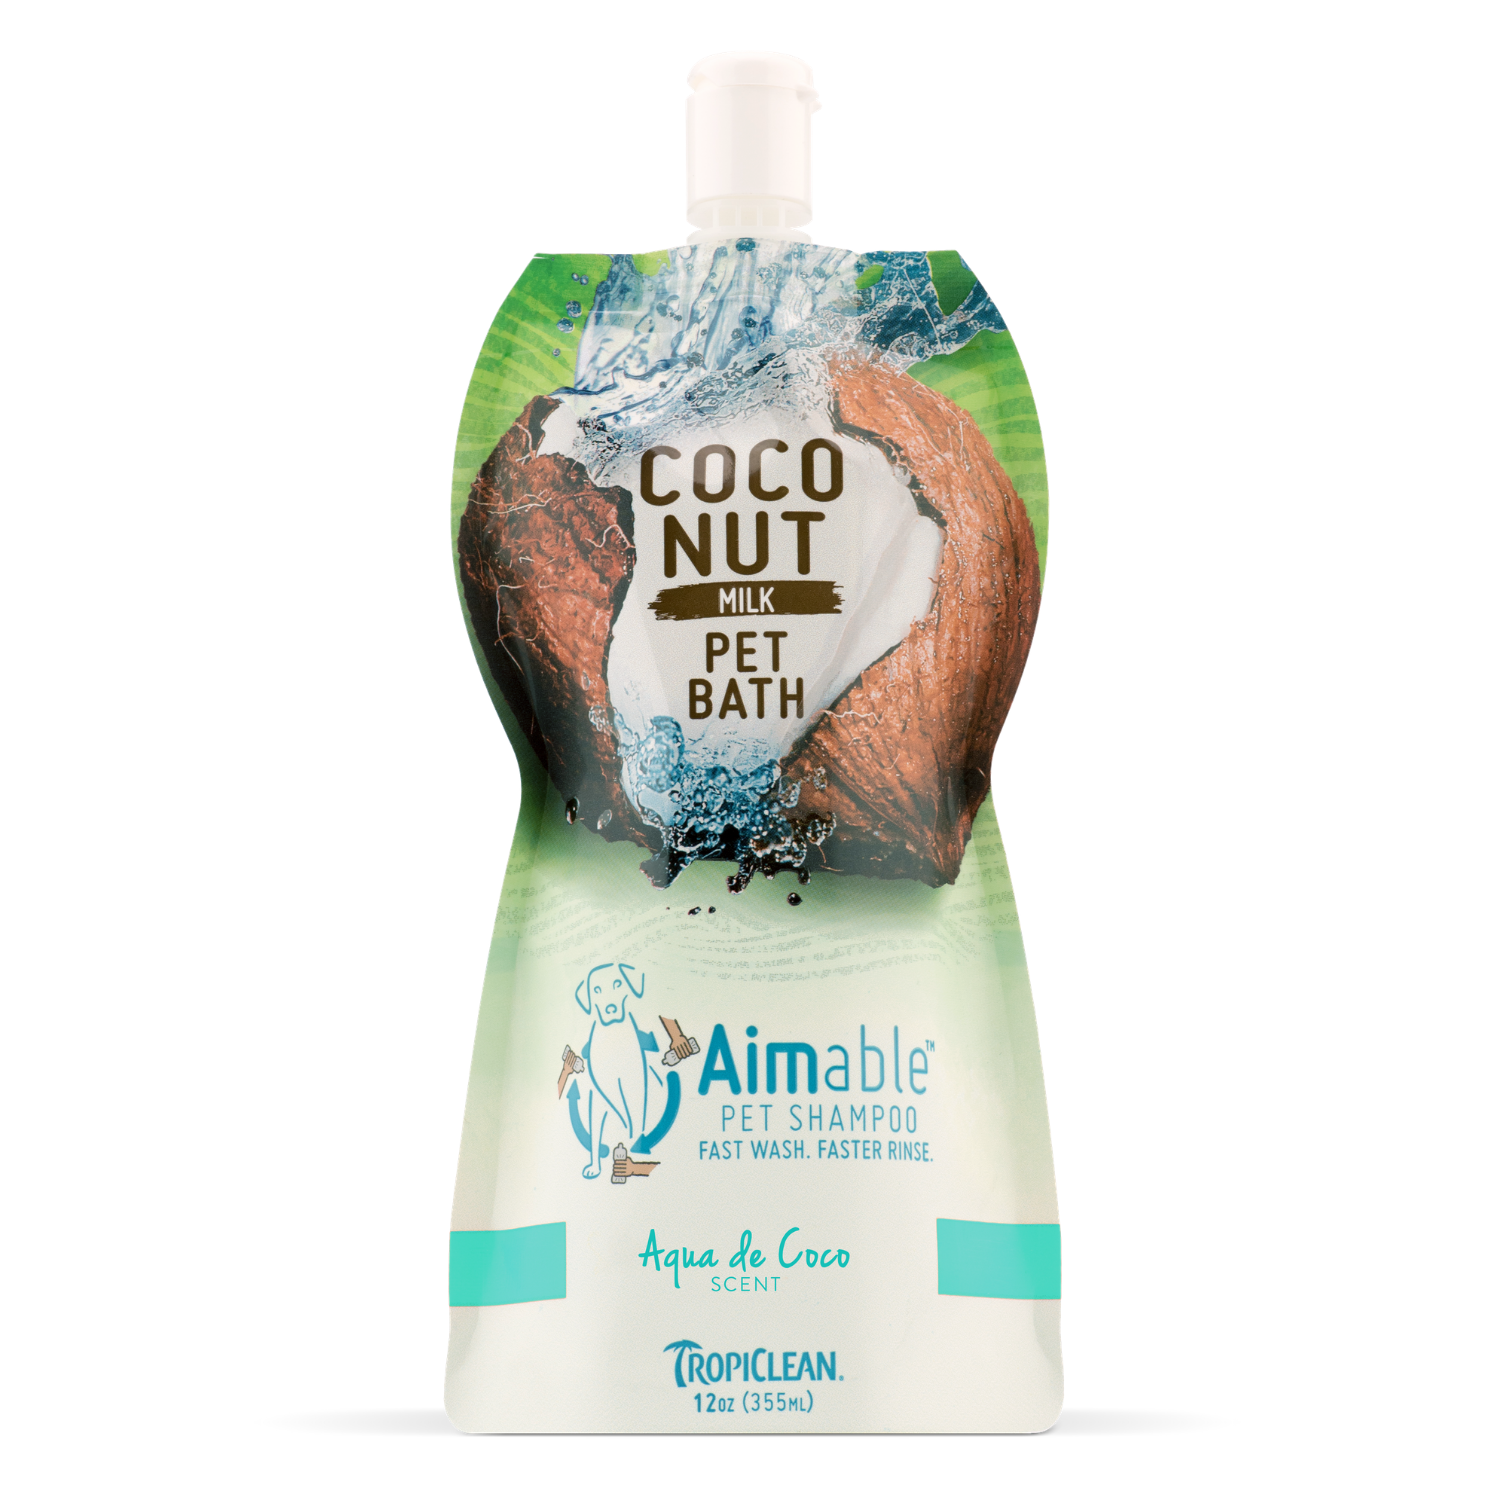 Tropiclean Aimable Coconut Milk Pet Bath Shampoo  (Aqua de Coco) - 355ml